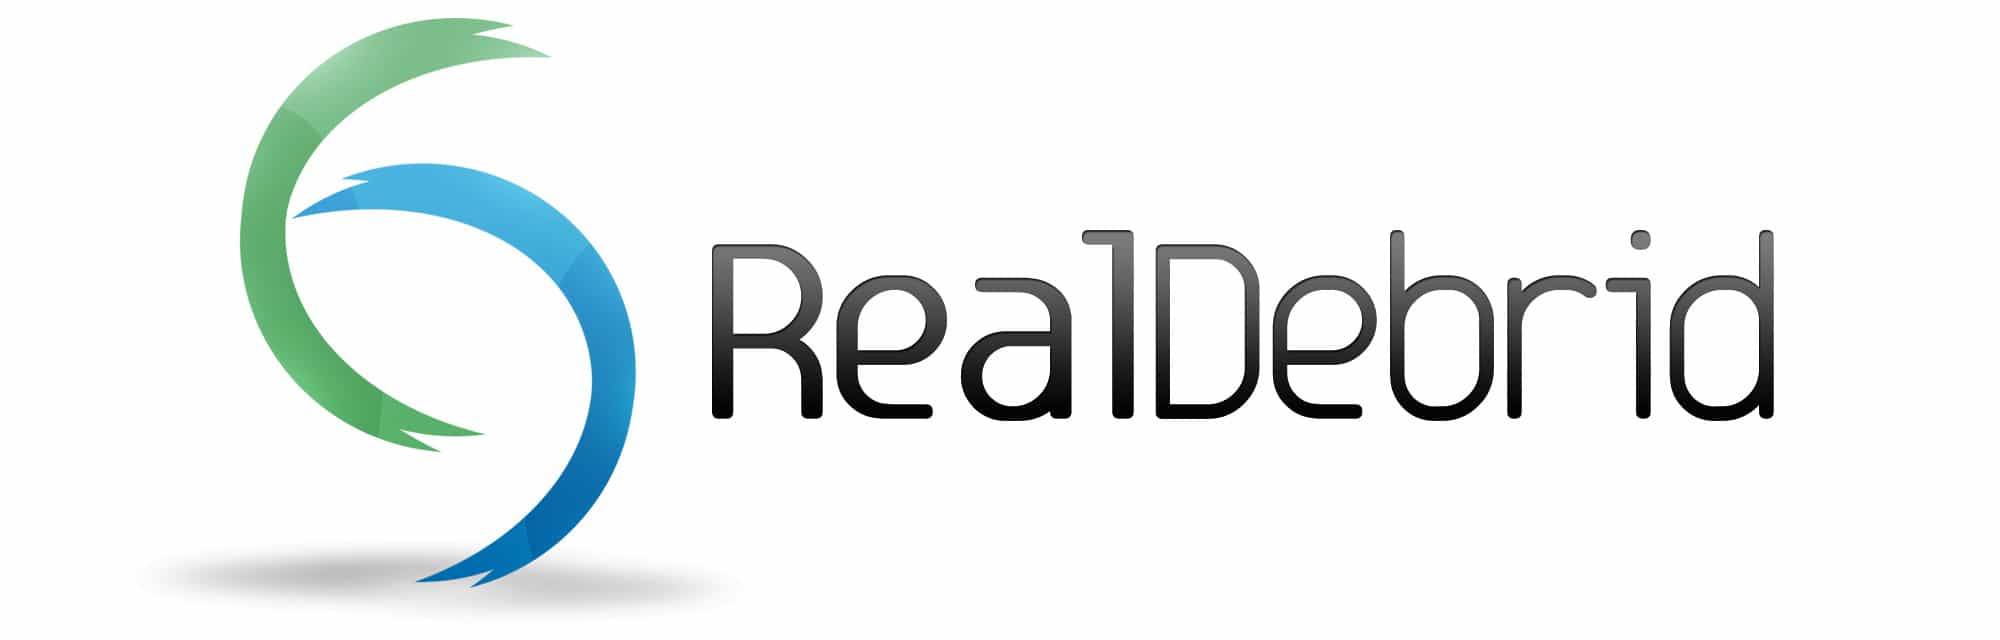 Real Debrid on Kodi? Does it actually work? Are there better